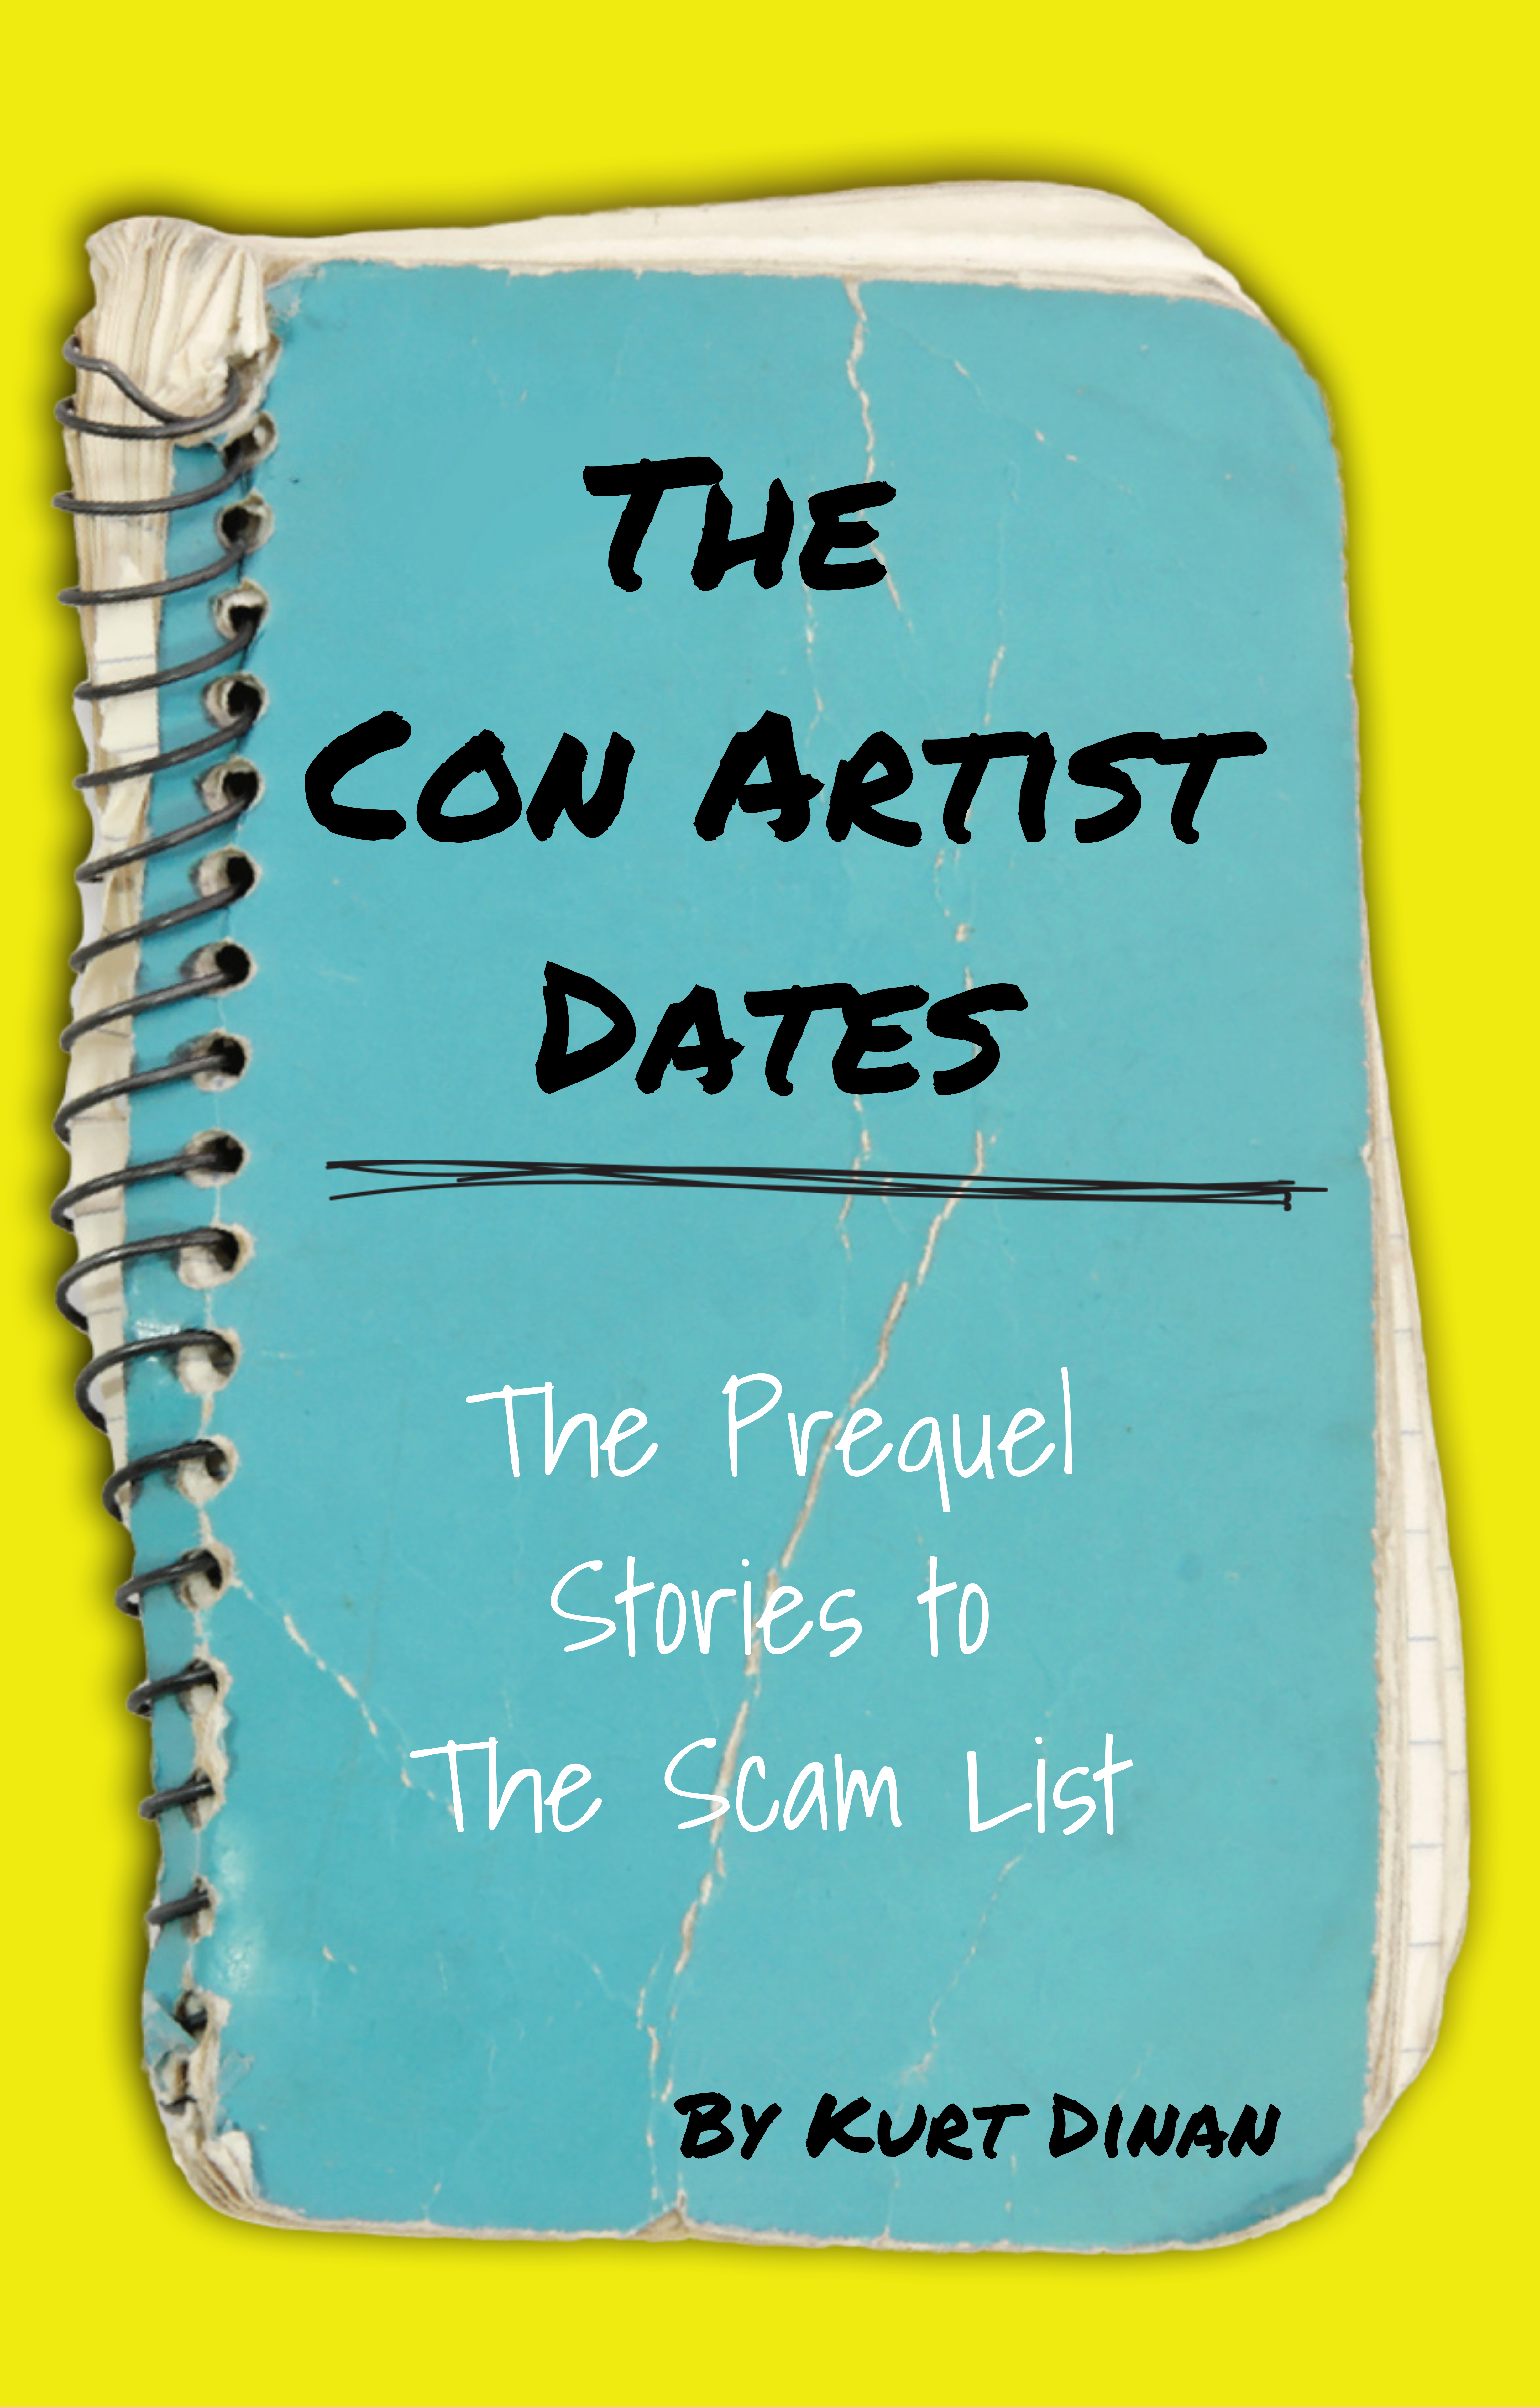 The-Con-Artist-Dates.png